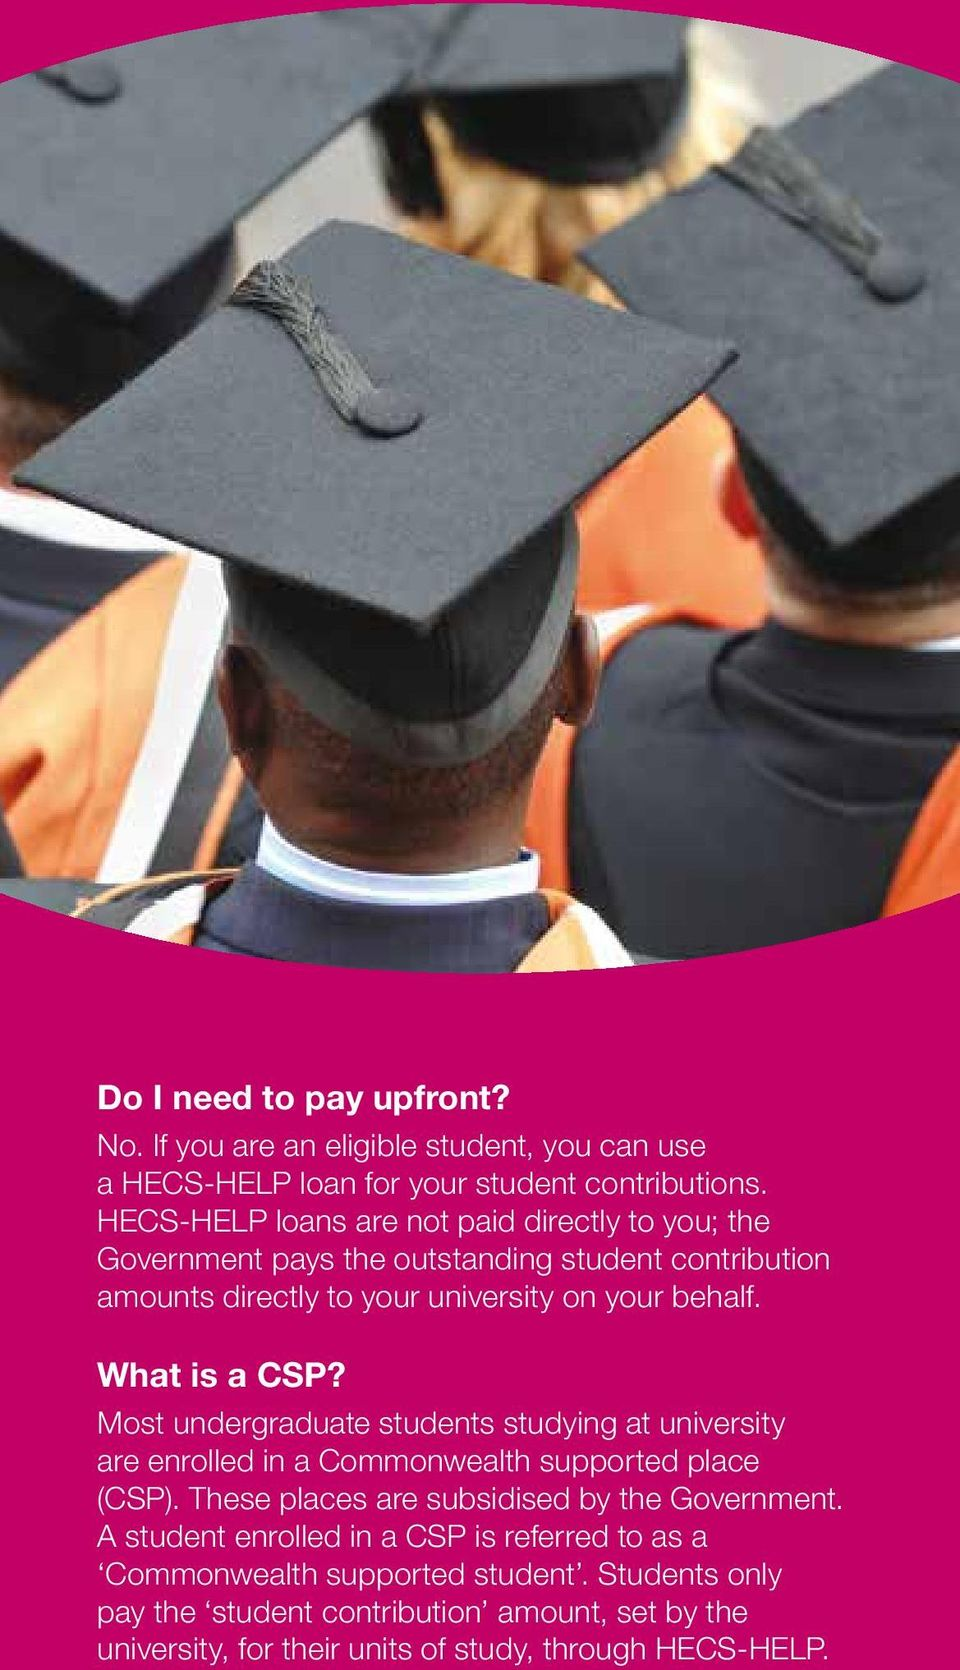 What is a CSP? Most undergraduate students studying at university are enrolled in a Commonwealth supported place (CSP).